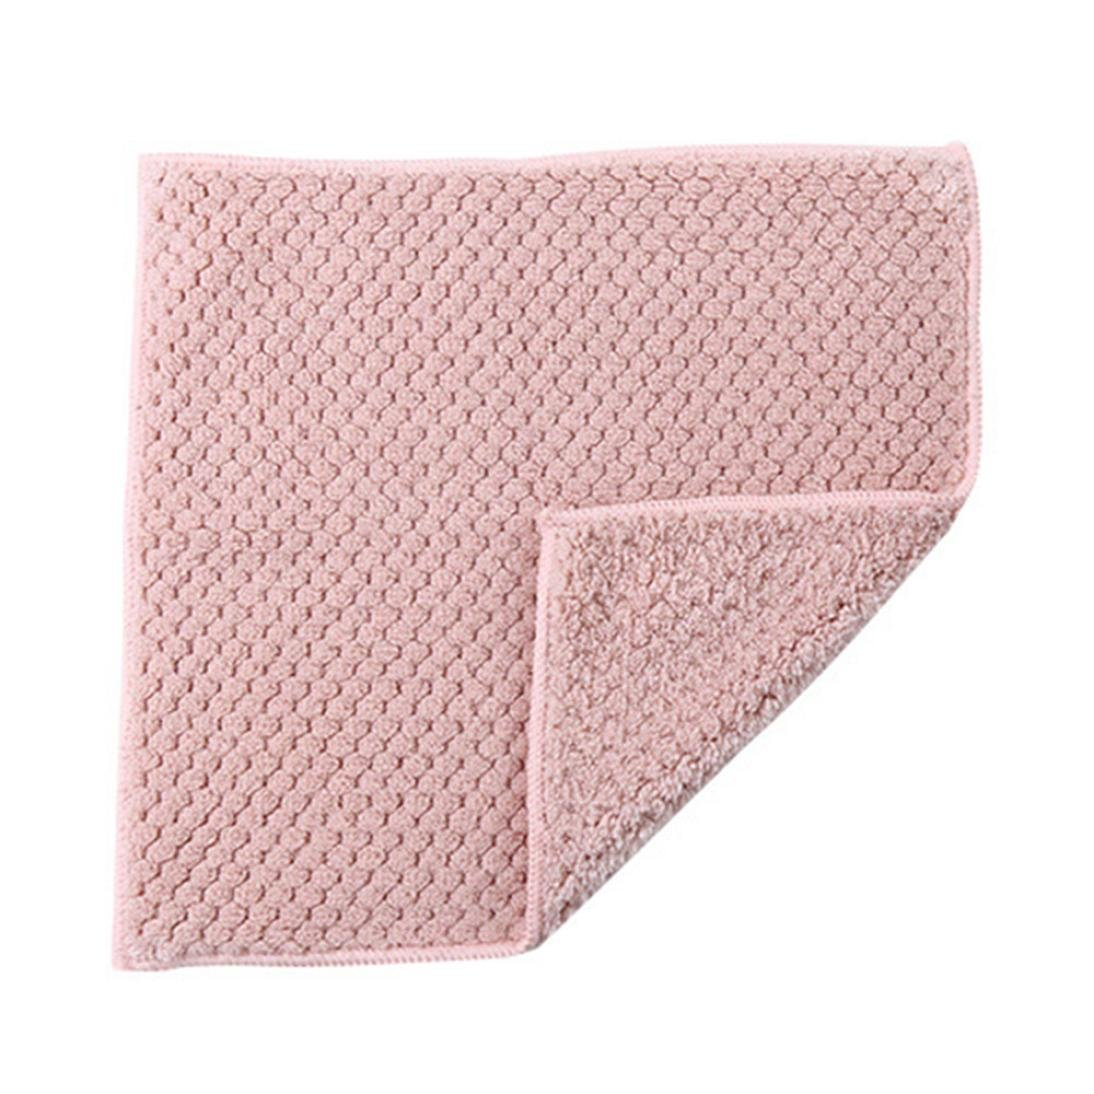 Clearance Sale!DEESEE(TM)Nonstick Oil Coral Velvet Hanging Hand Towels Kitchen Dishclout (Pink) by DEESEE(TM)_Home (Image #1)